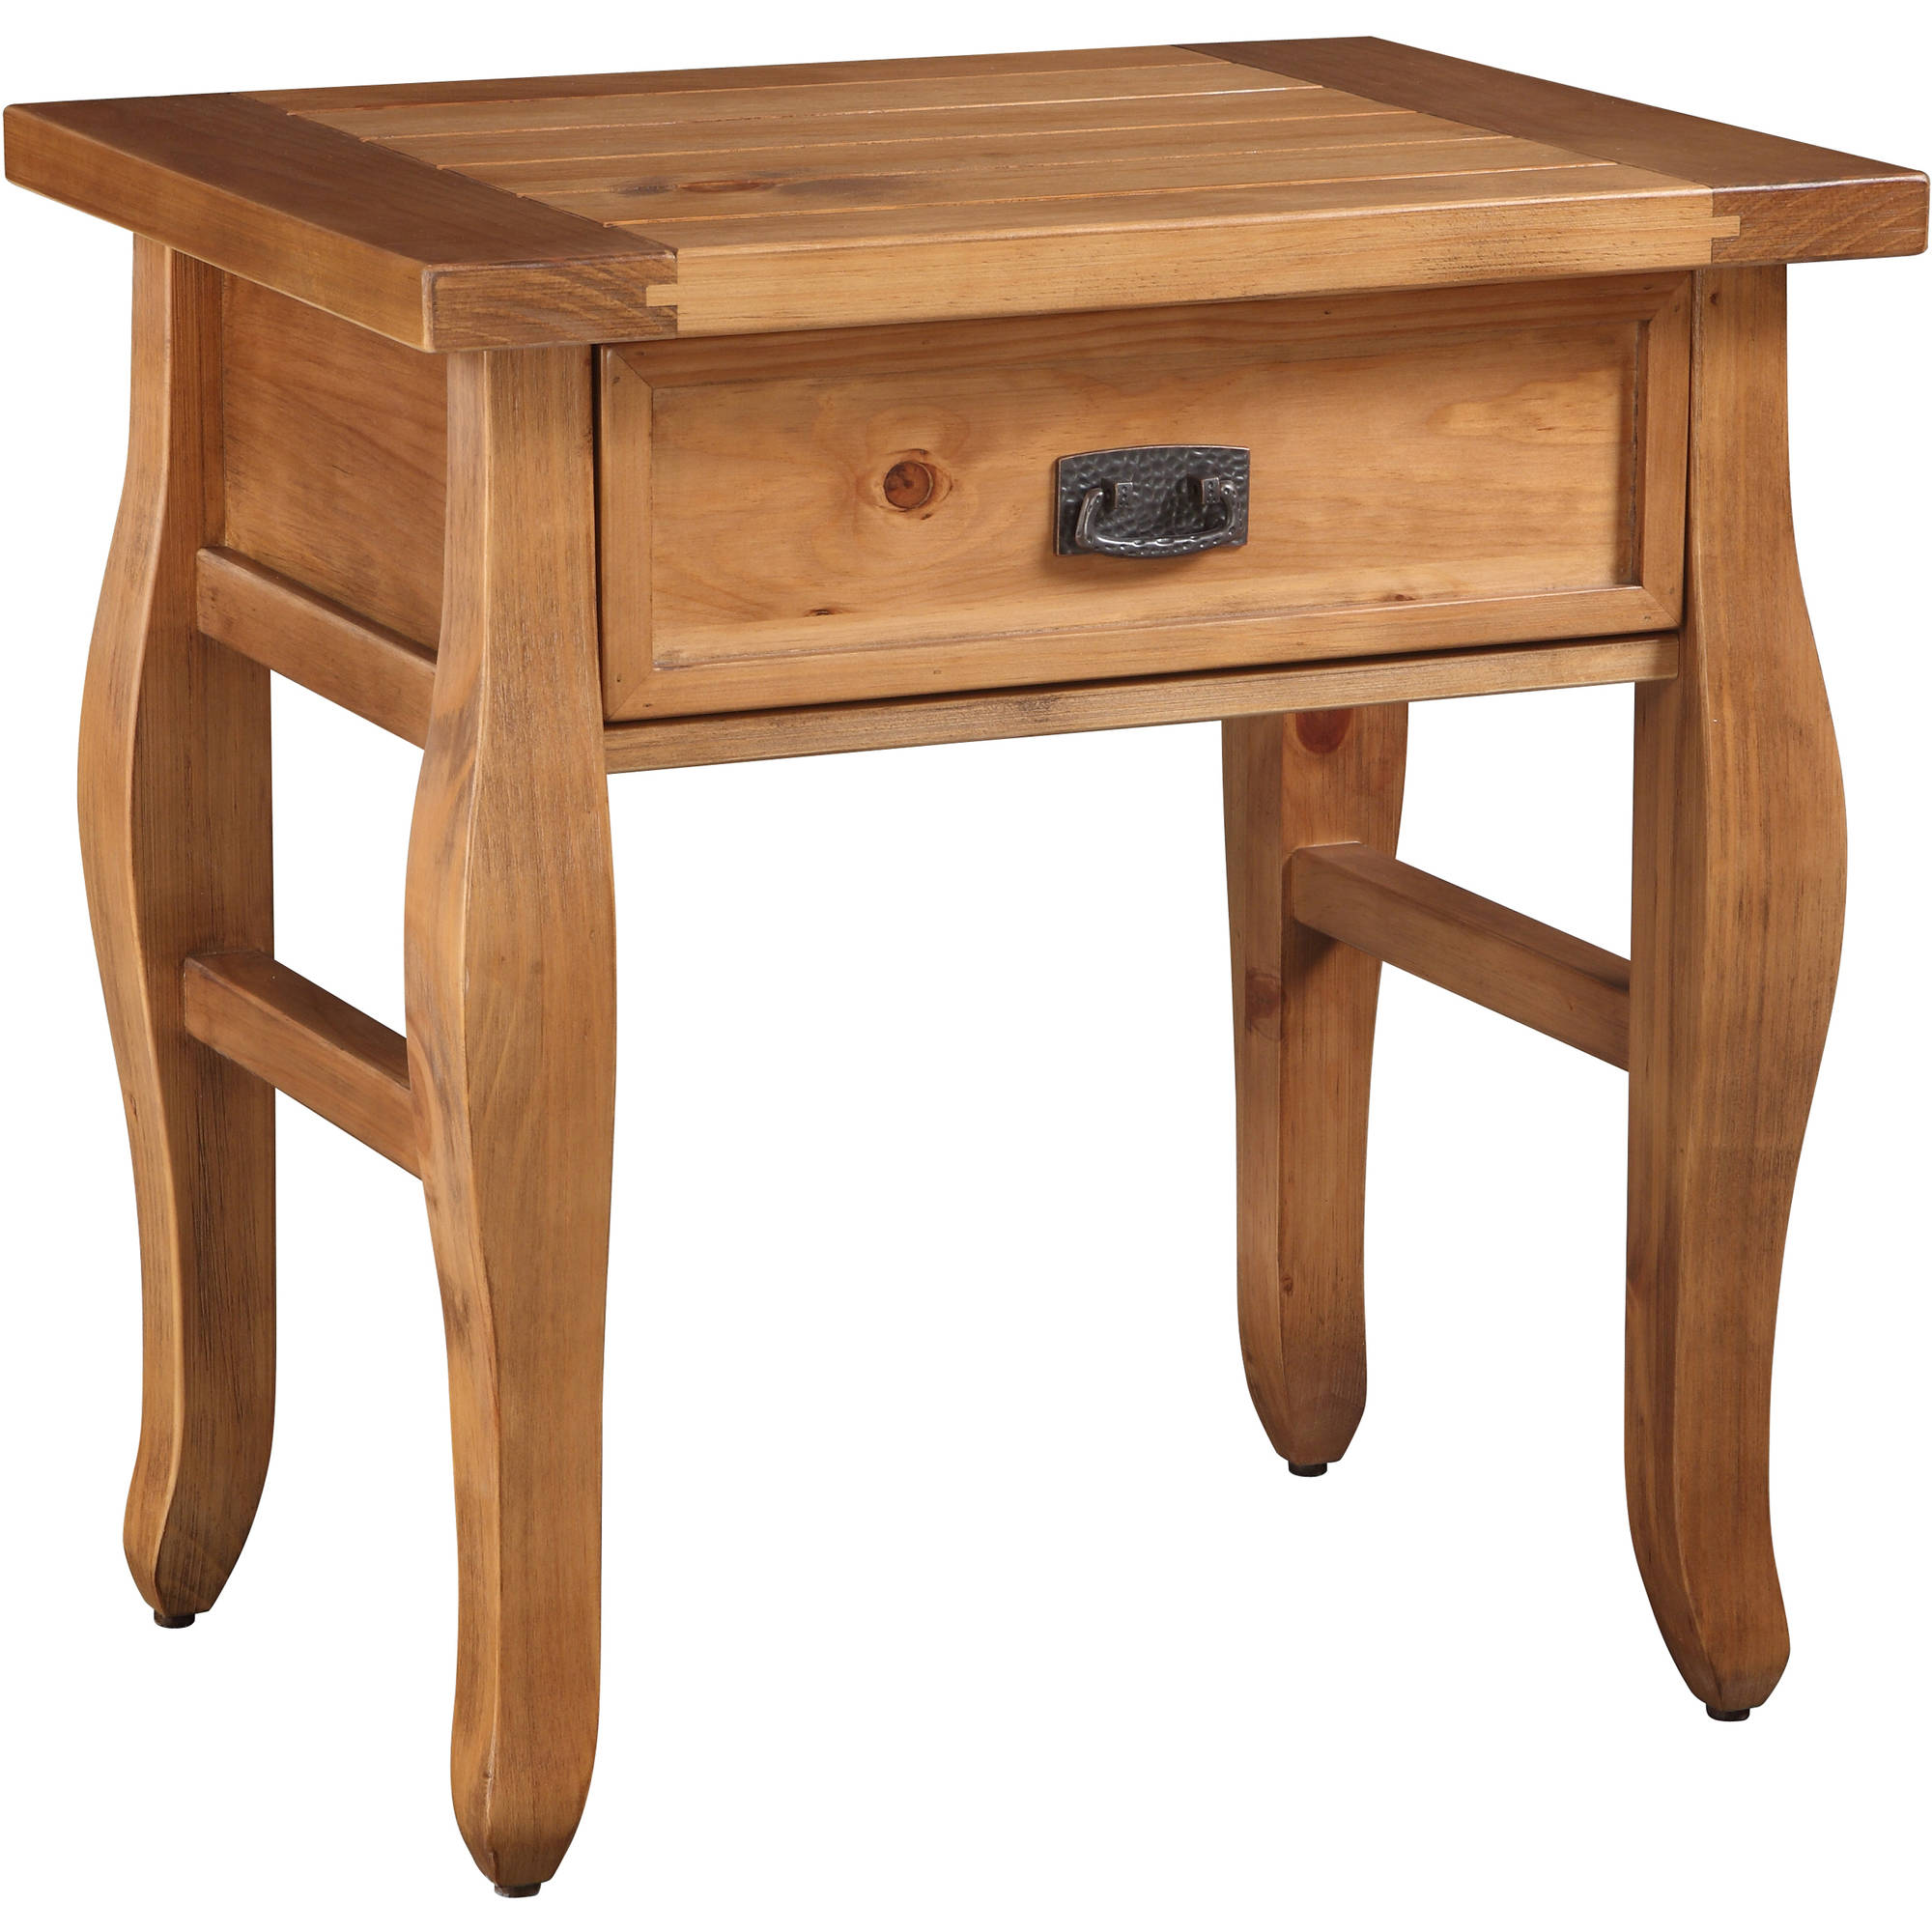 Linon Santa Fe End Table, Antique Finish, 24 inches Tall